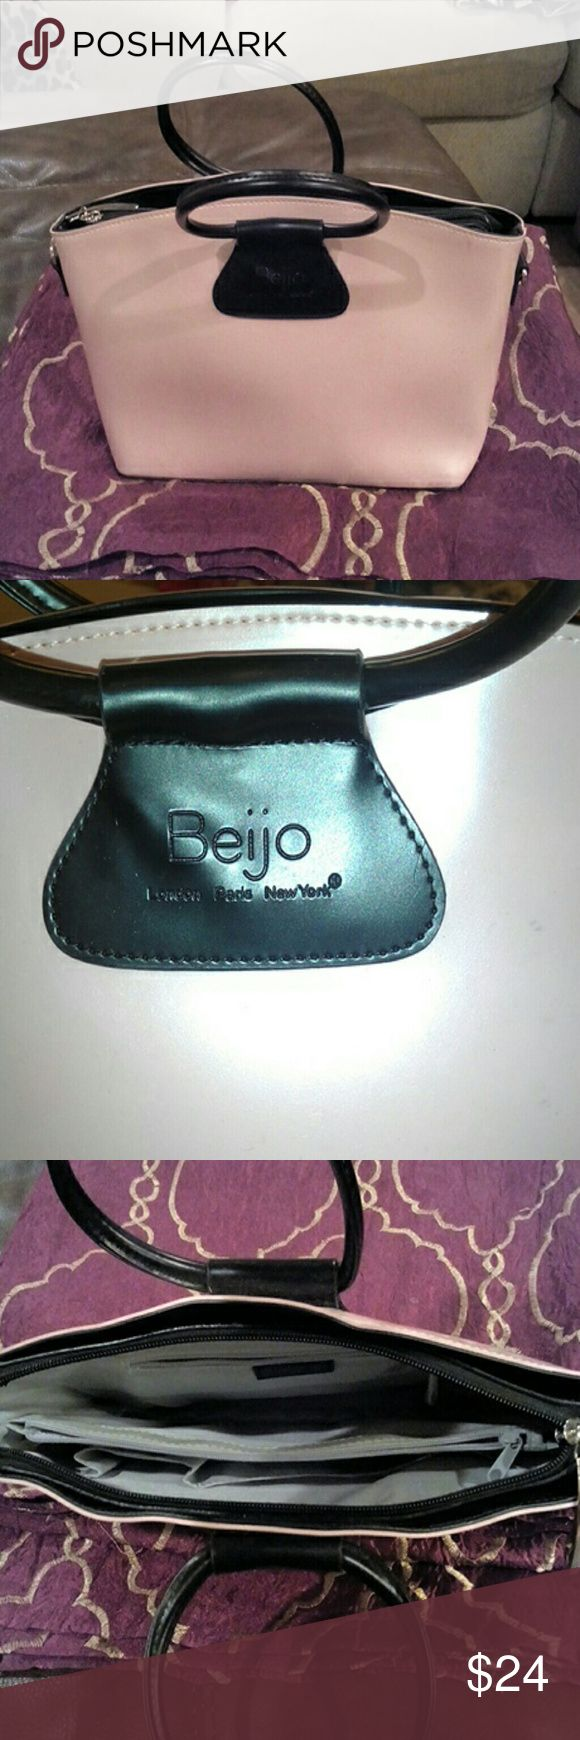 Beijo Handbag Light pin with black trim handles and bottom, with studs.  Interior in clean condition with large middle zippered pocket, side zippered pocket and organizer.  Some light blue ink smudge on lower front (pic 4). Beijo Bags Satchels